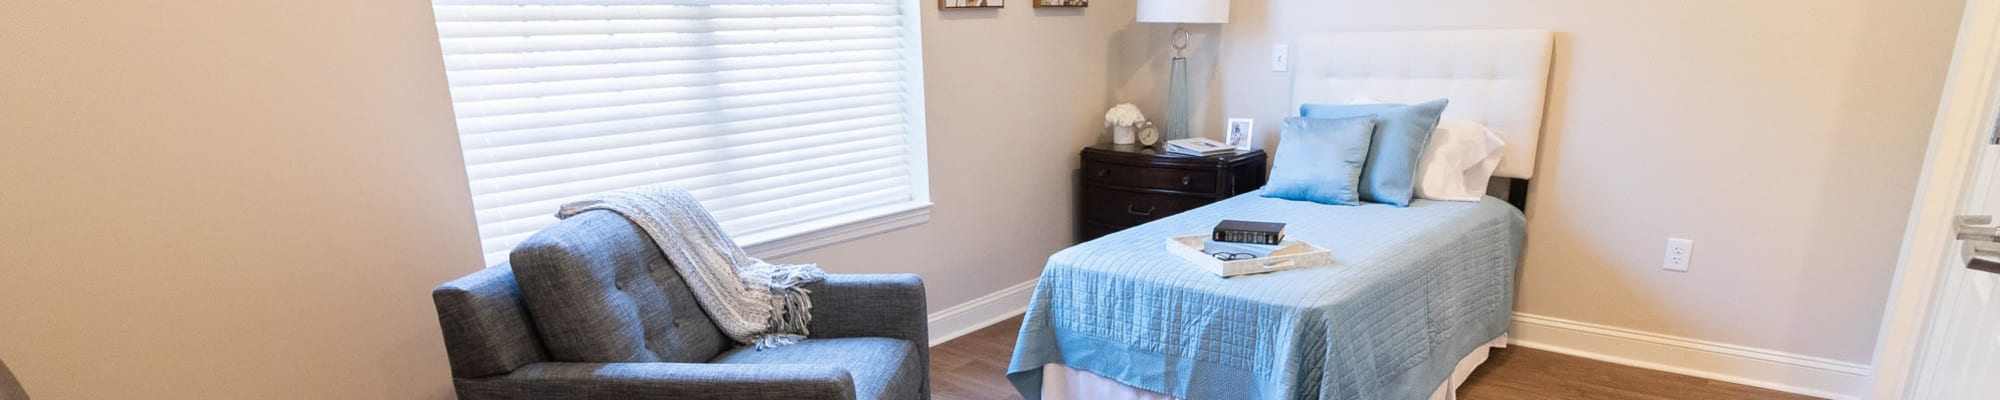 Memory Care at Harmony at State College in State College, Pennsylvania